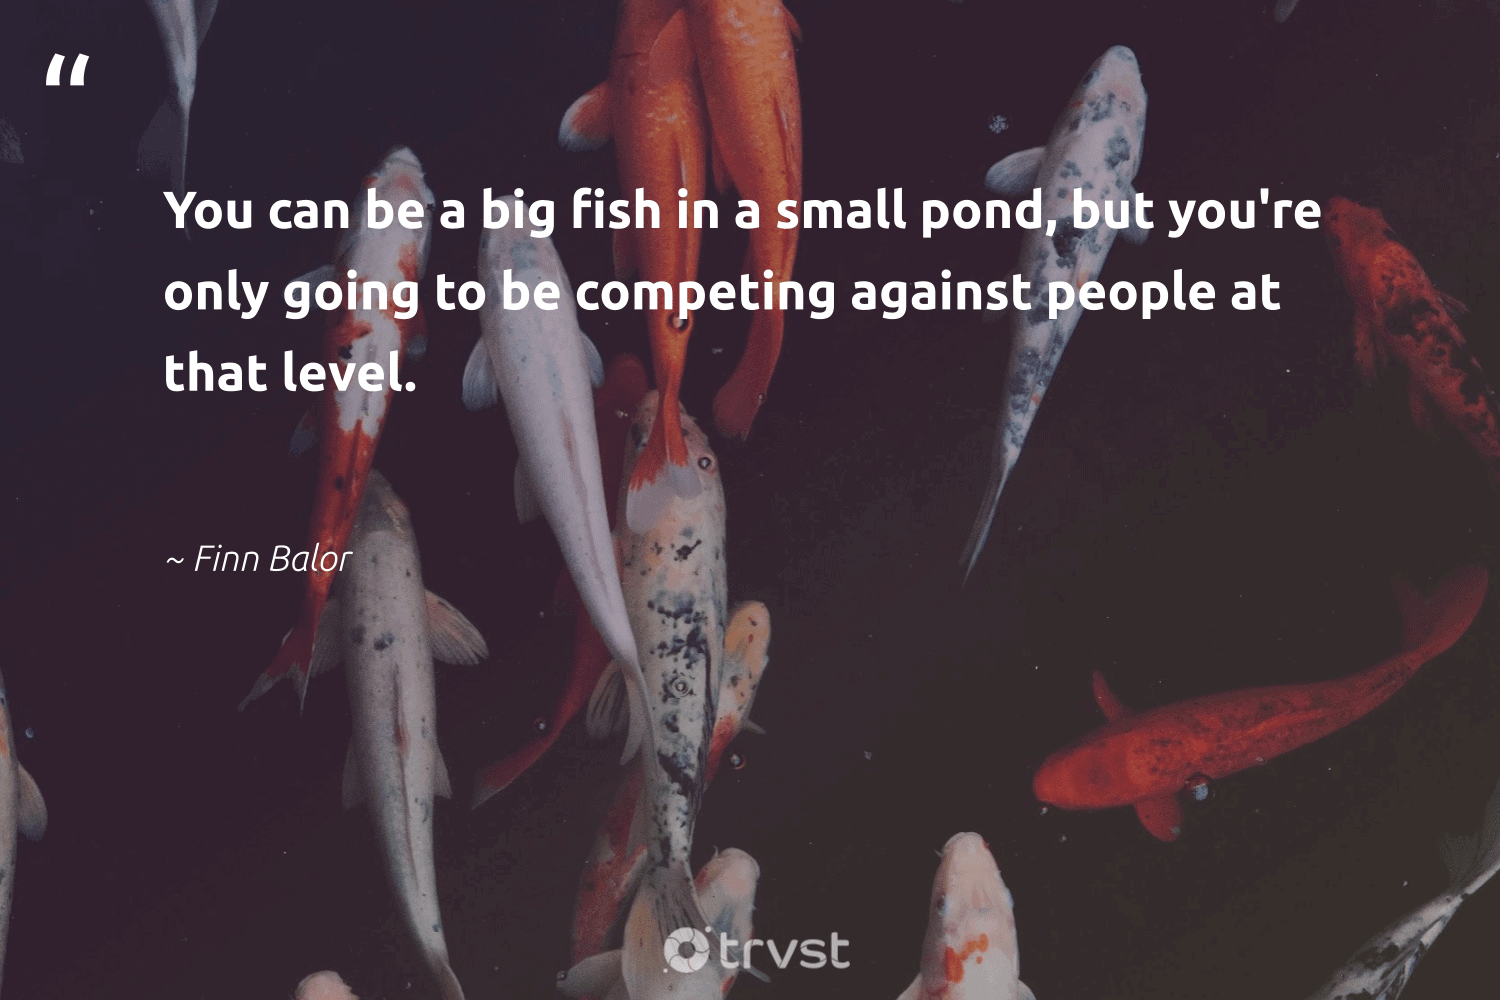 """""""You can be a big fish in a small pond, but you're only going to be competing against people at that level.""""  - Finn Balor #trvst #quotes #fish #aquaticlife #collectiveaction #biodiversity #dotherightthing #sustainability #dogood #perfectnature #changetheworld #intheocean"""